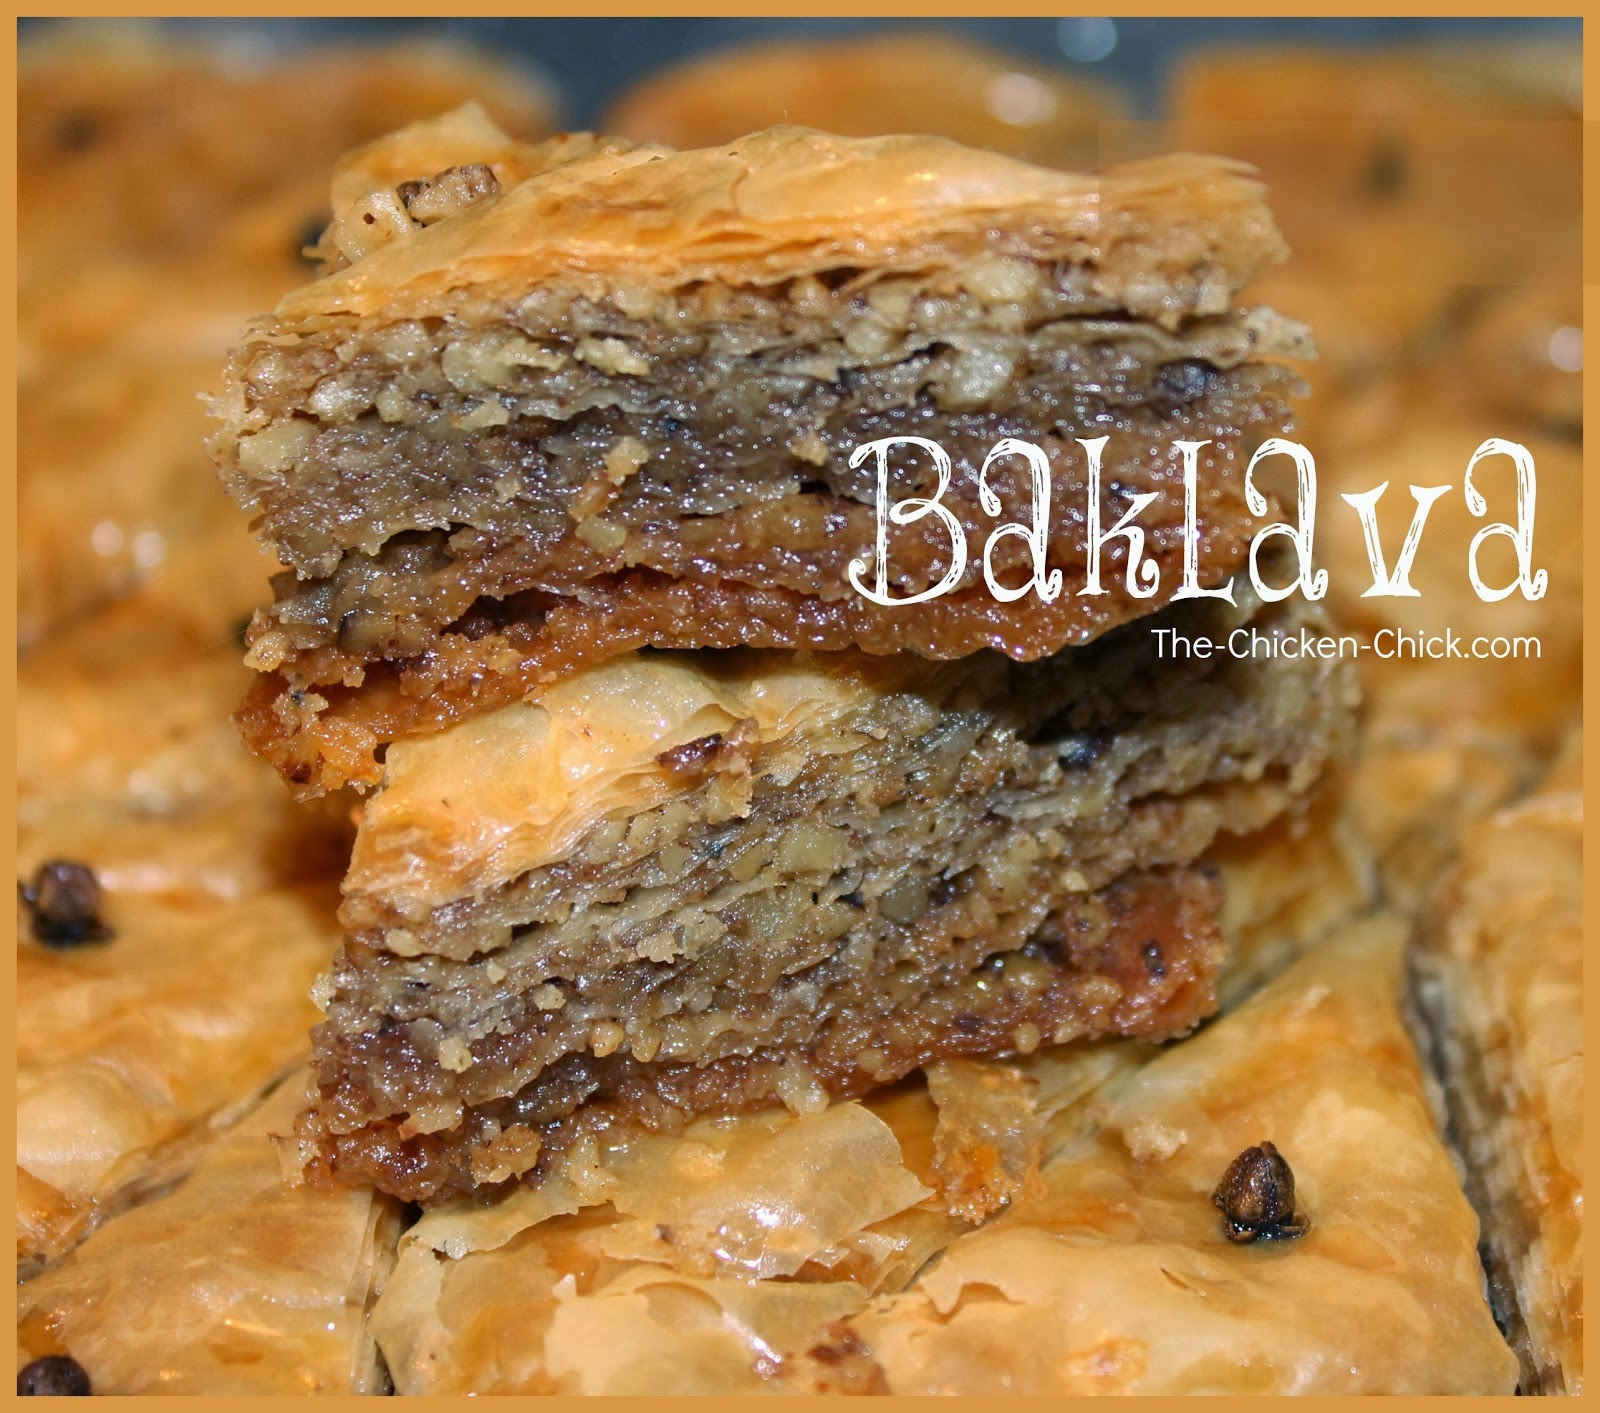 baklava recipe via The Chicken Chick®